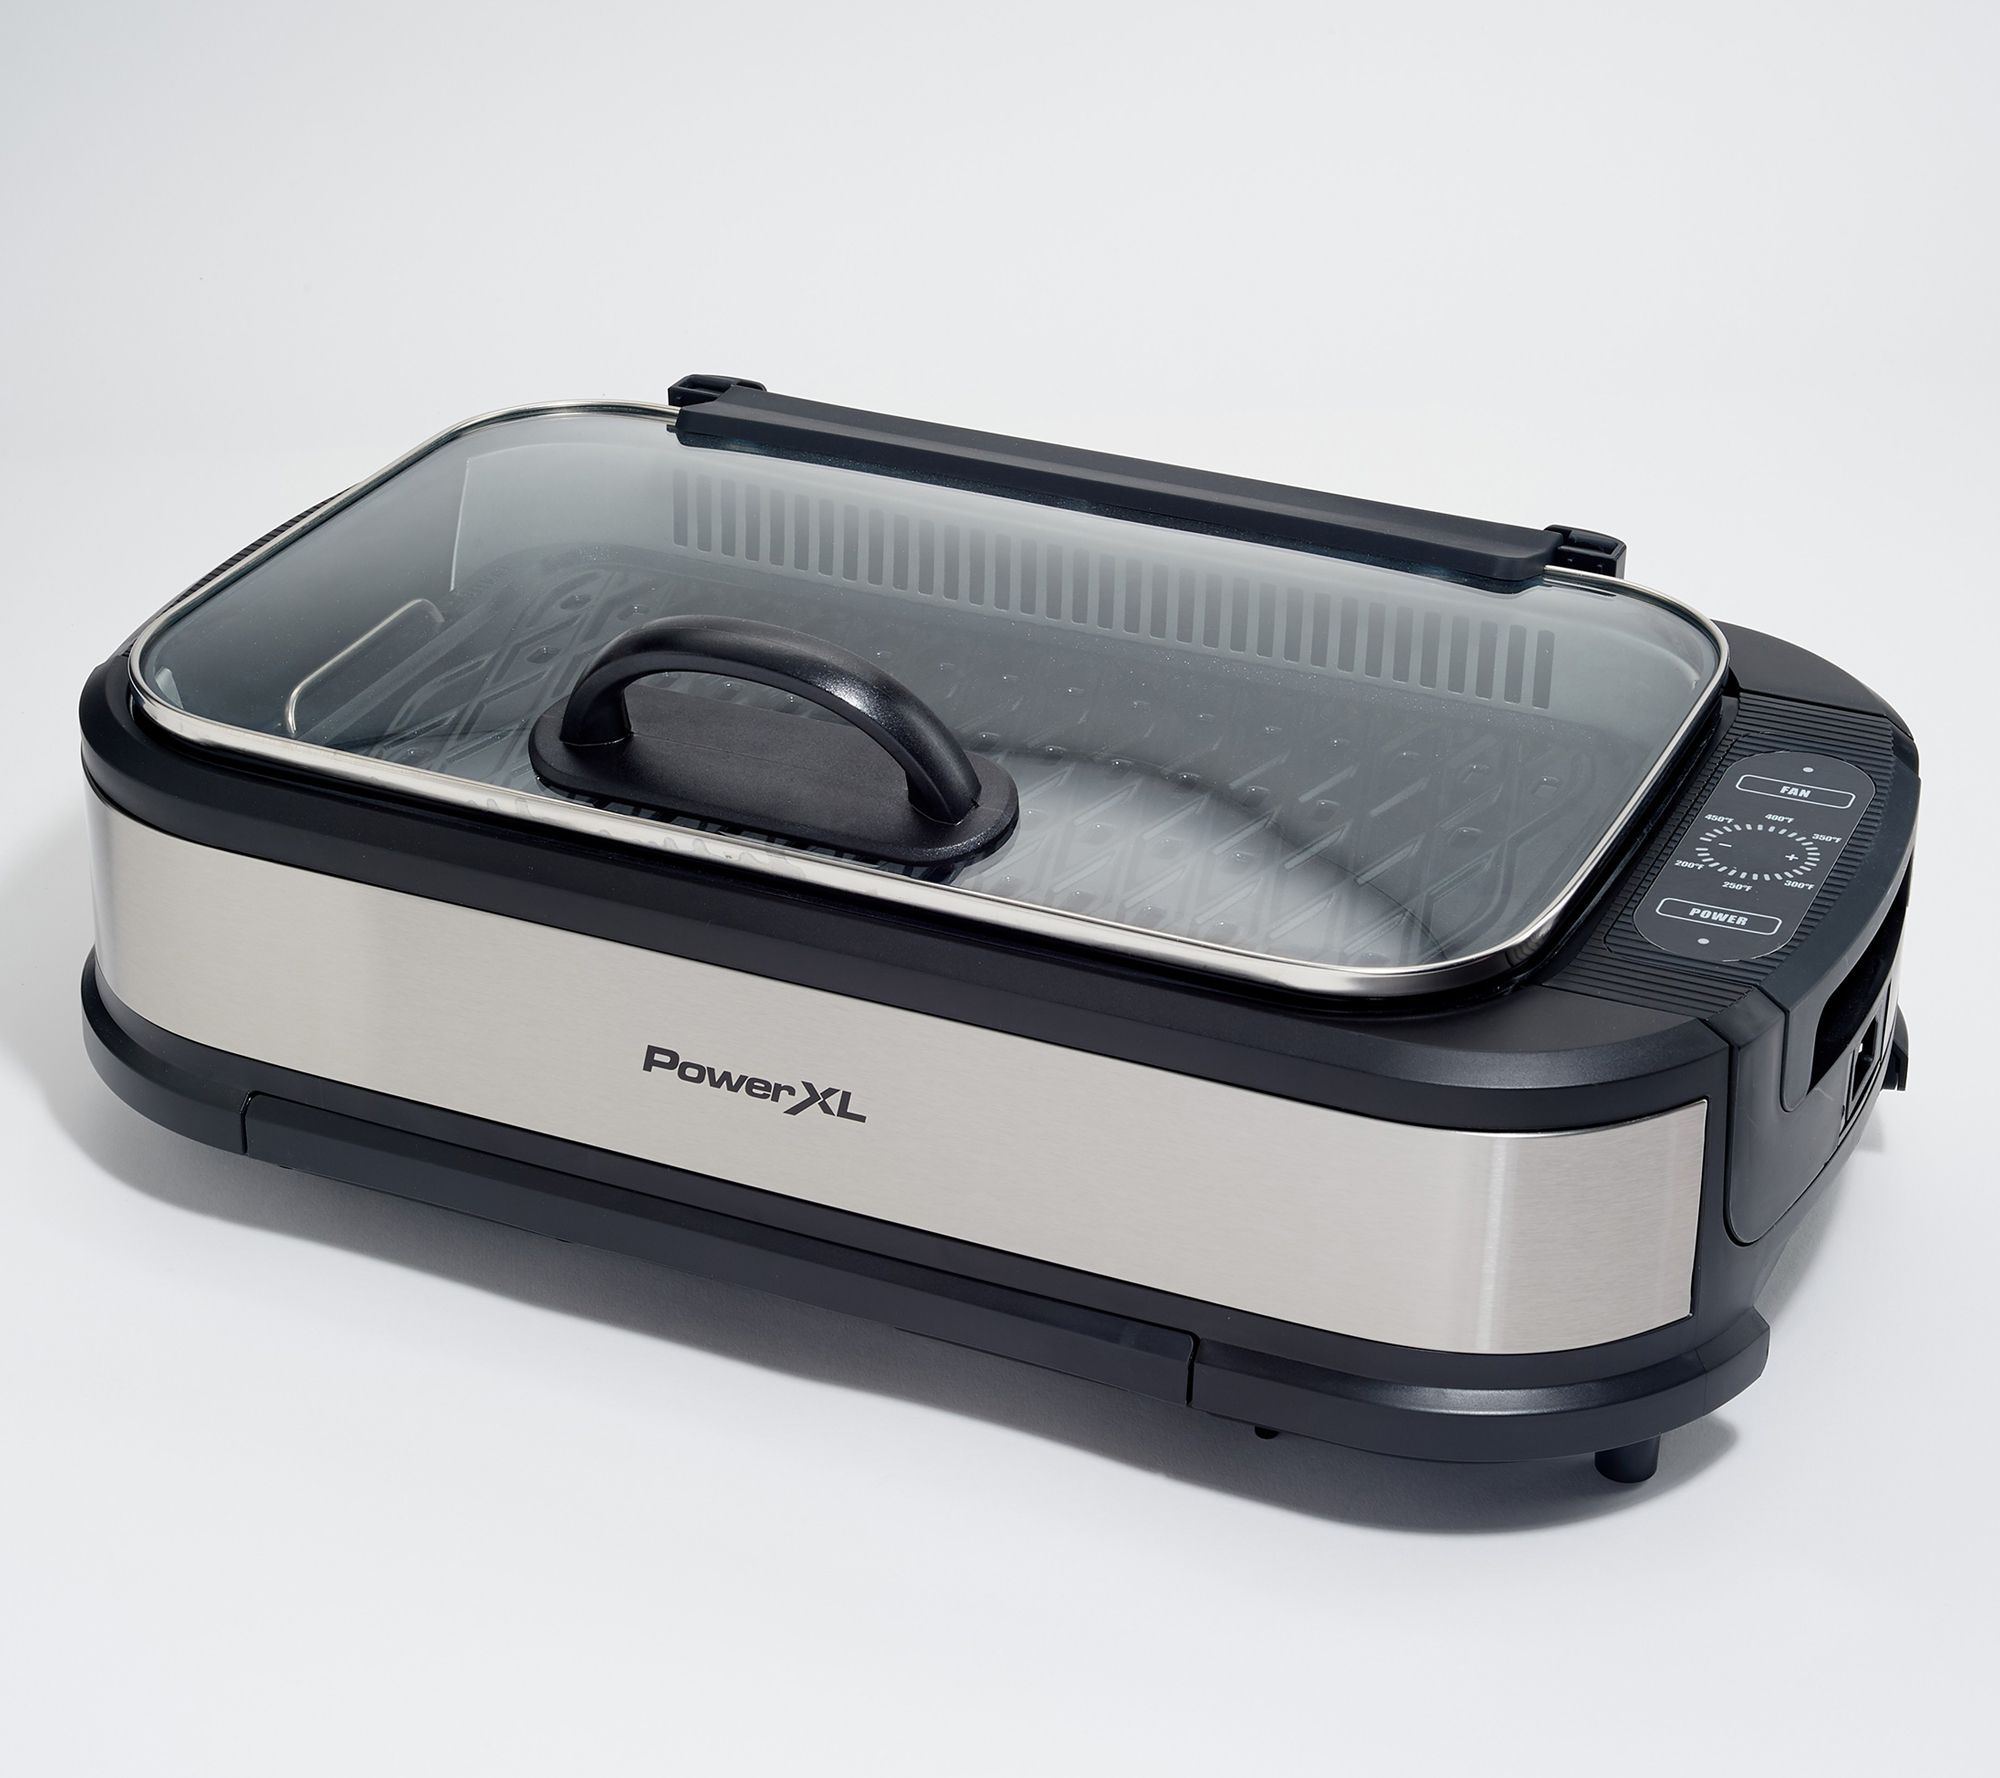 powerxl 1500w smokeless grill pro with griddle